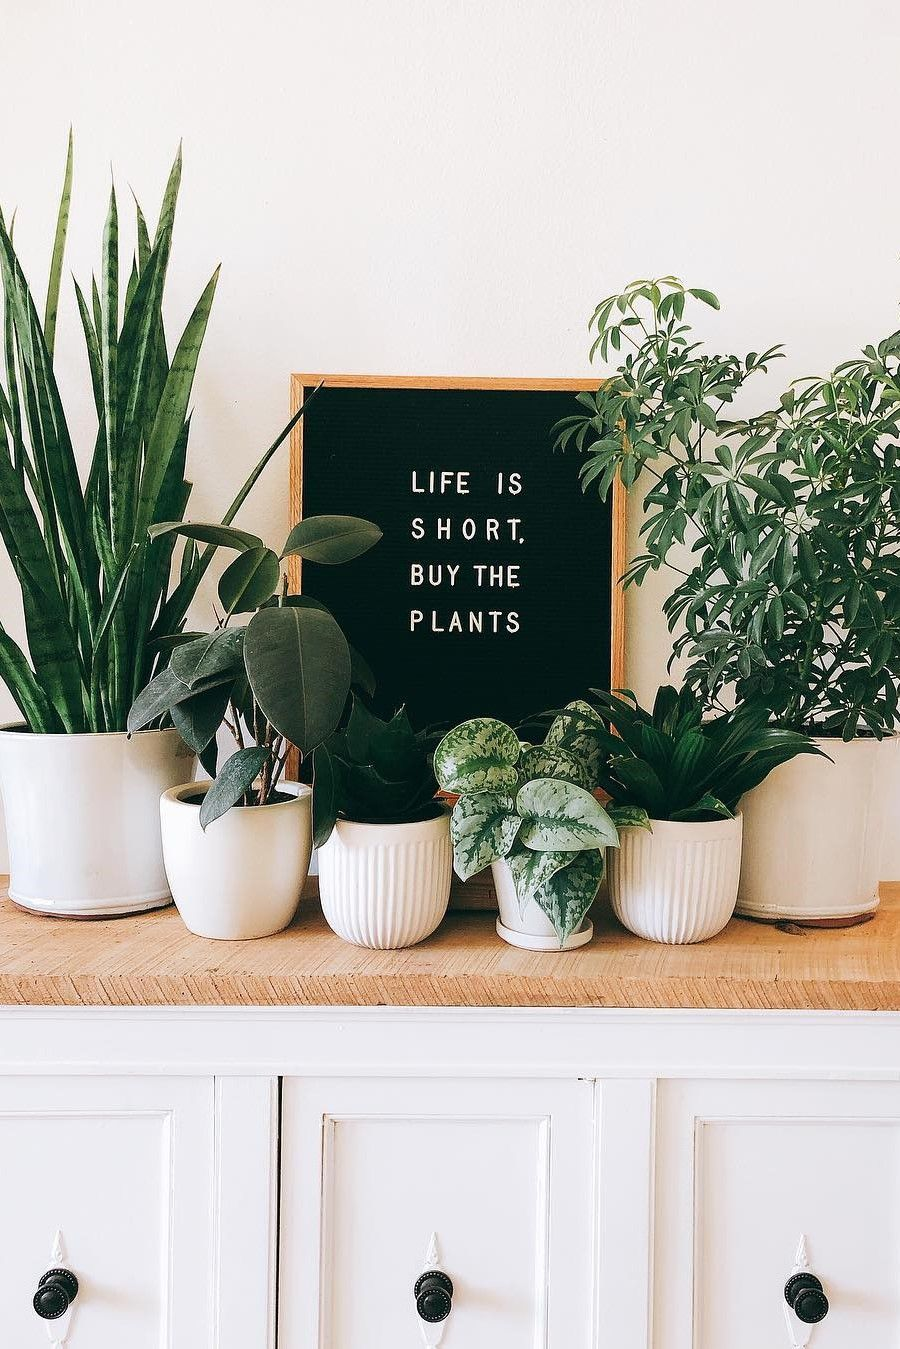 These Letter Boards With Plant Quotes Speak To Us On A Spiritual Level In 2020 With Images